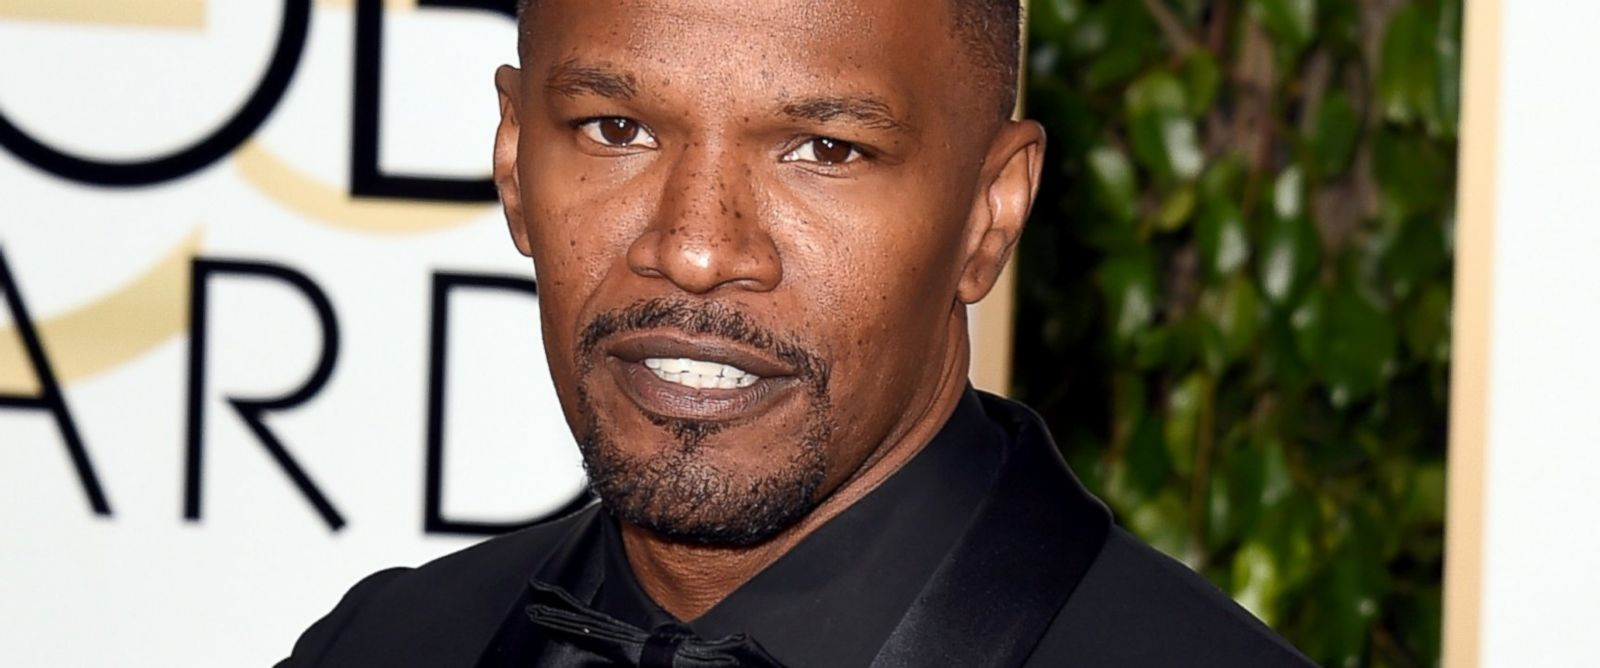 PHOTO: Actor Jamie Foxx attends the 73rd Annual Golden Globe Awards held at the Beverly Hilton Hotel, Jan. 10, 2016, in Beverly Hills, Calif.